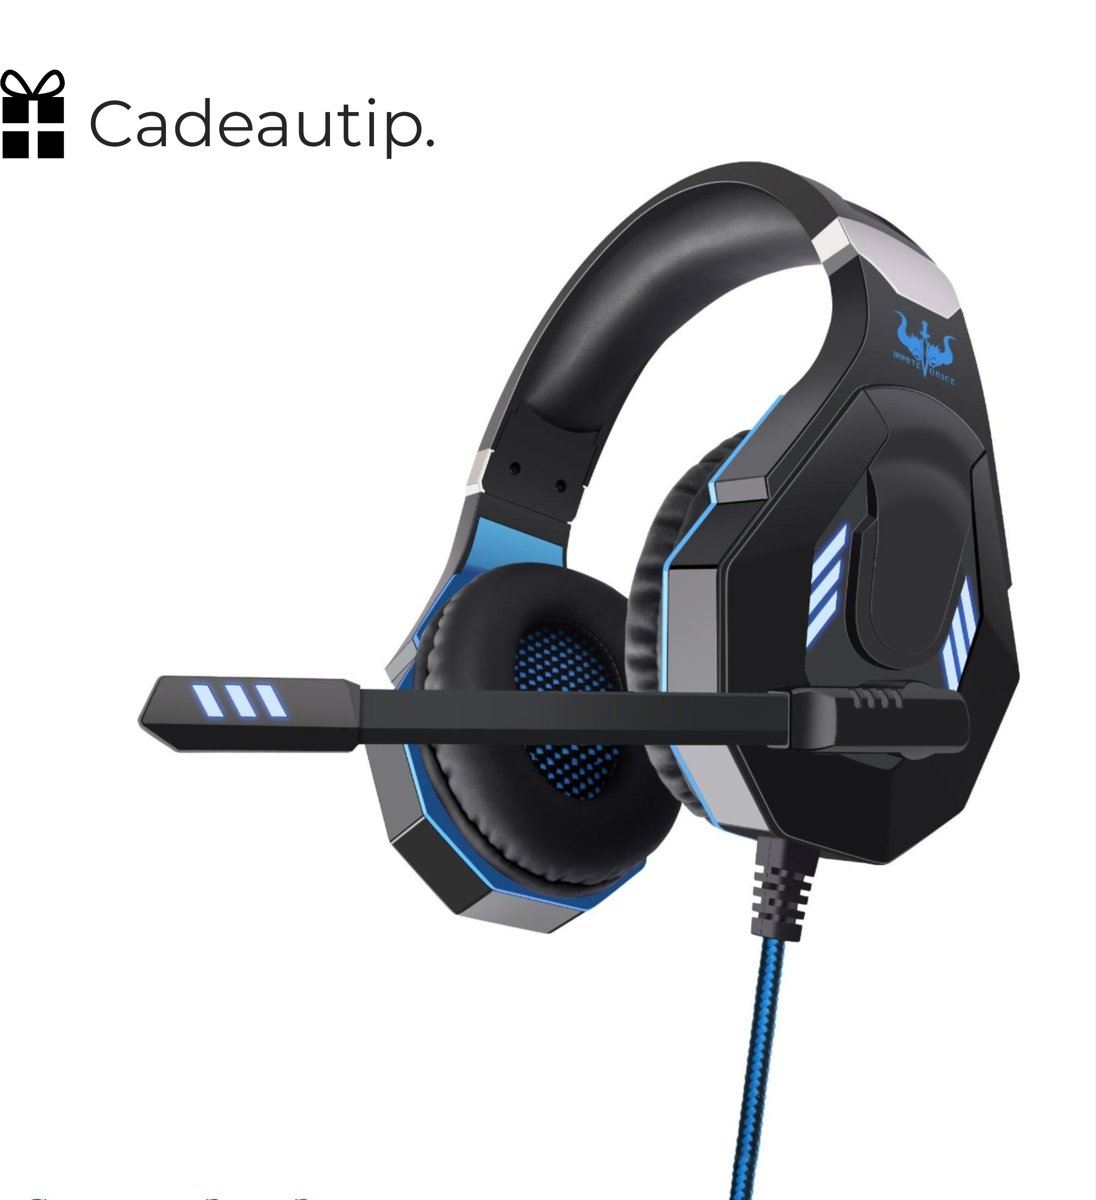 Ovleng GT93 RGB Gaming Headset - Zwart/Blauw | Stereo Gaming Headset - LED Game Headset - Geschikt voor o.a. PS4, Xbox, PC, Smartphone, Tablet, Switch & meer! kopen